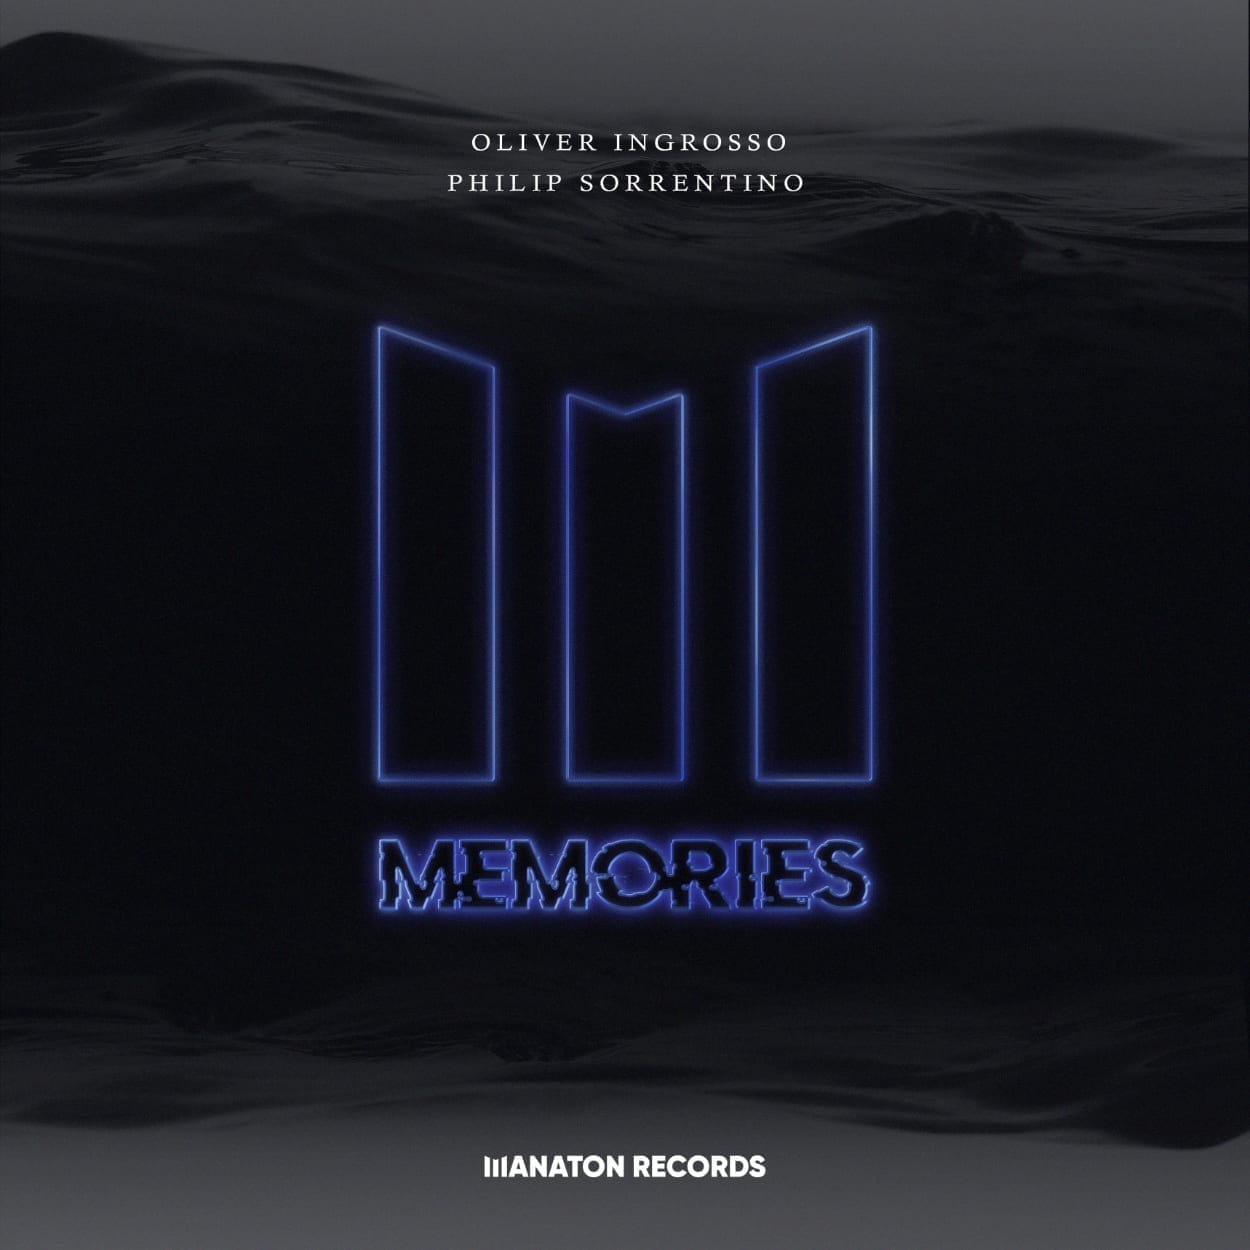 Oliver Ingrosso drops new collaborative cut - 'Memories' is released on Manaton Records imprint.